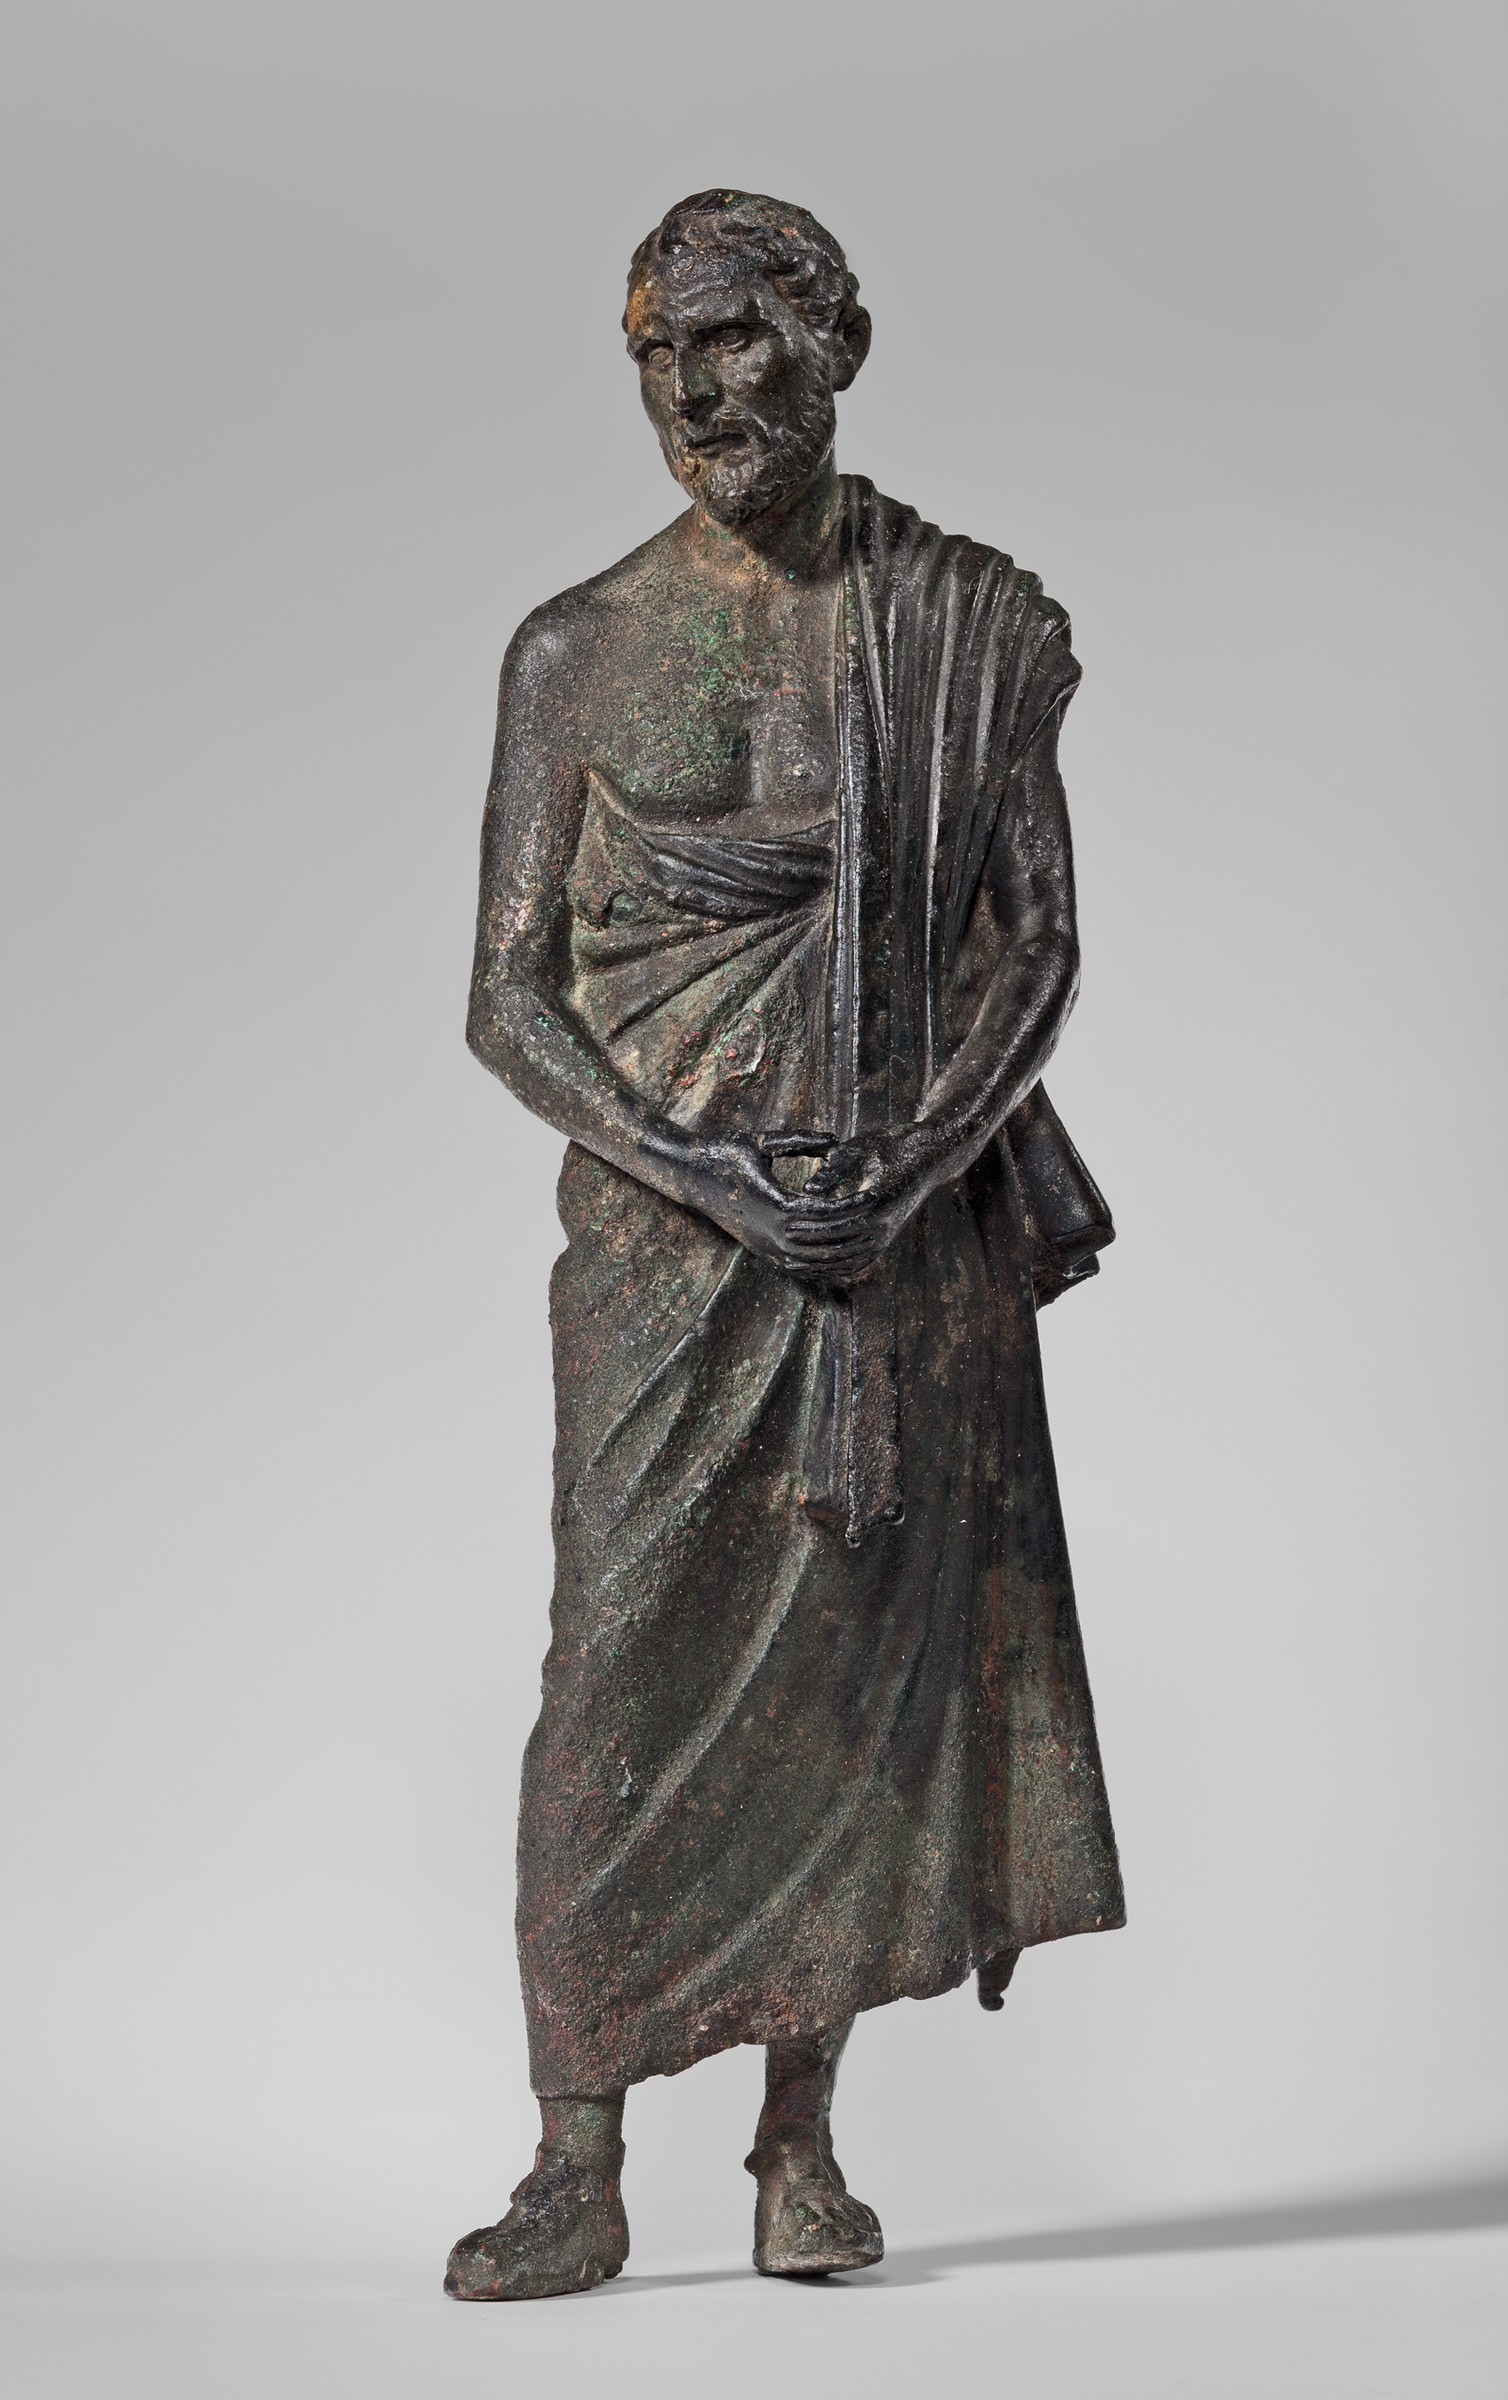 A dark brownish-green statuette depicts a man standing with his hands clasped in front. His right shoulder is bare, and a cloth garment is pulled around his torso and draped over his left shoulder. His head is cocked slightly to his right, and he is bearded.